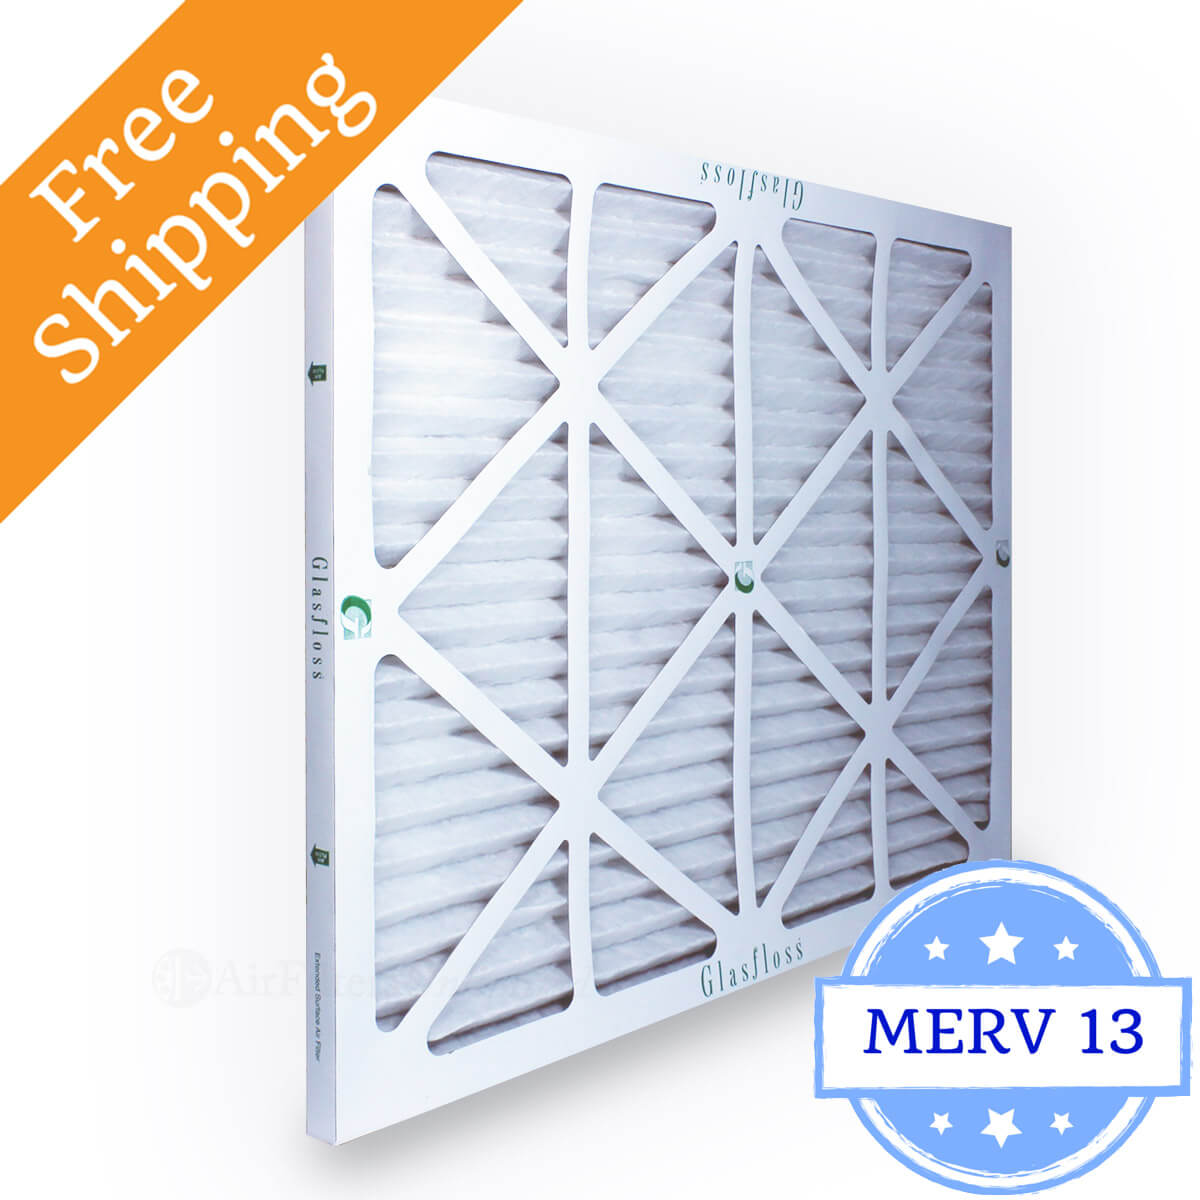 Glasfloss 15x20x1 Air Filter MR-13 Series